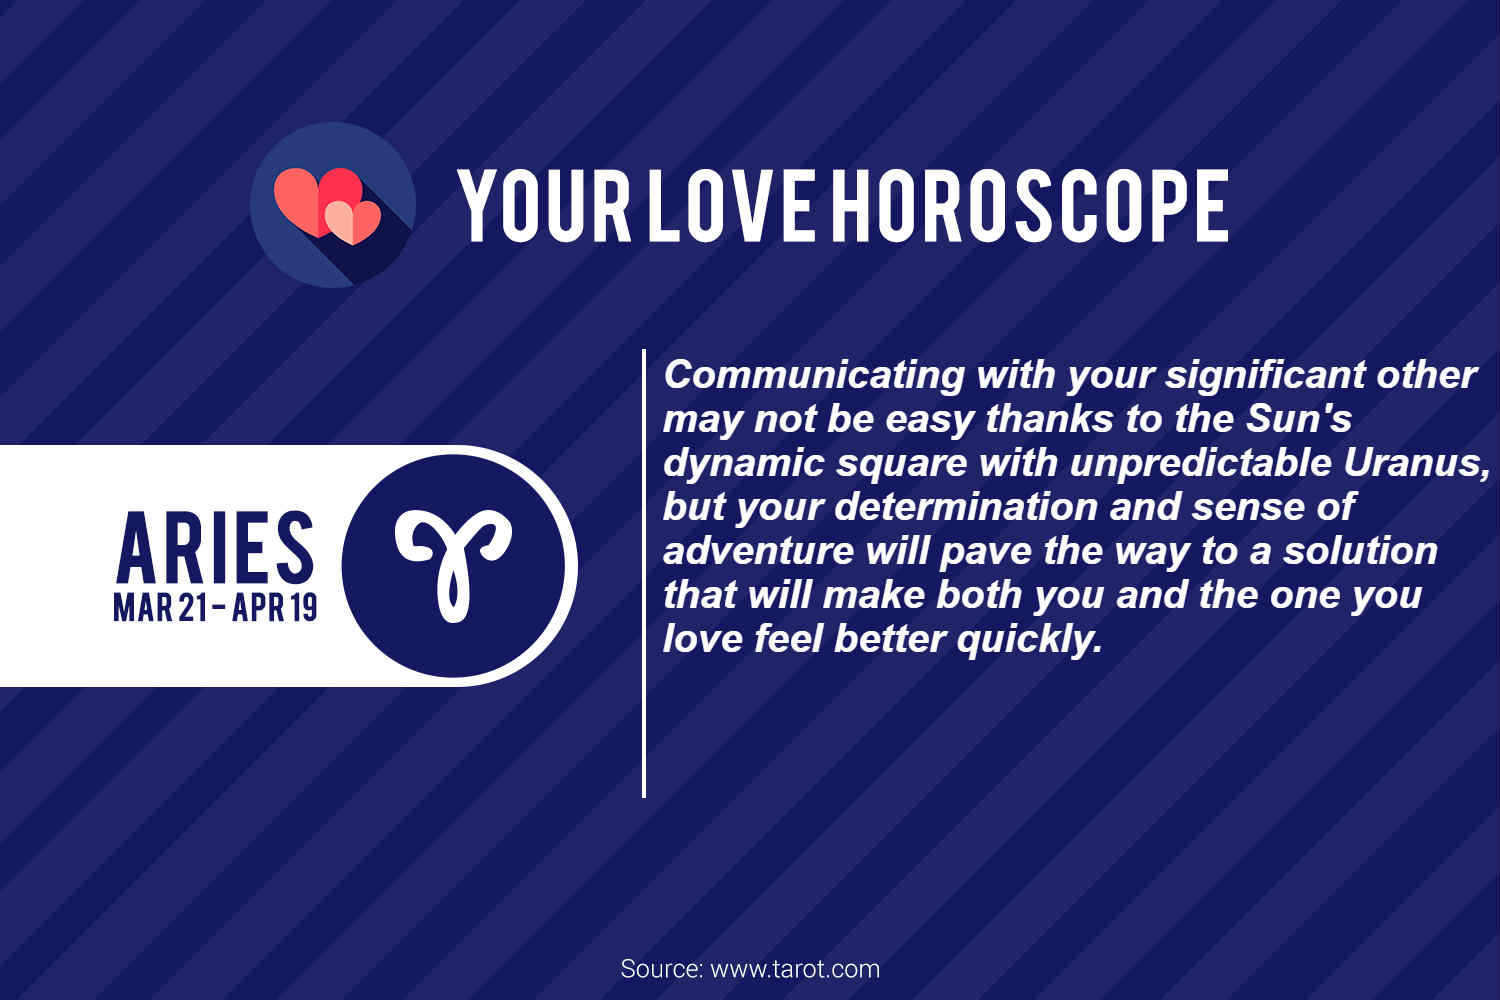 aries-love-horoscope-image-for-inuth